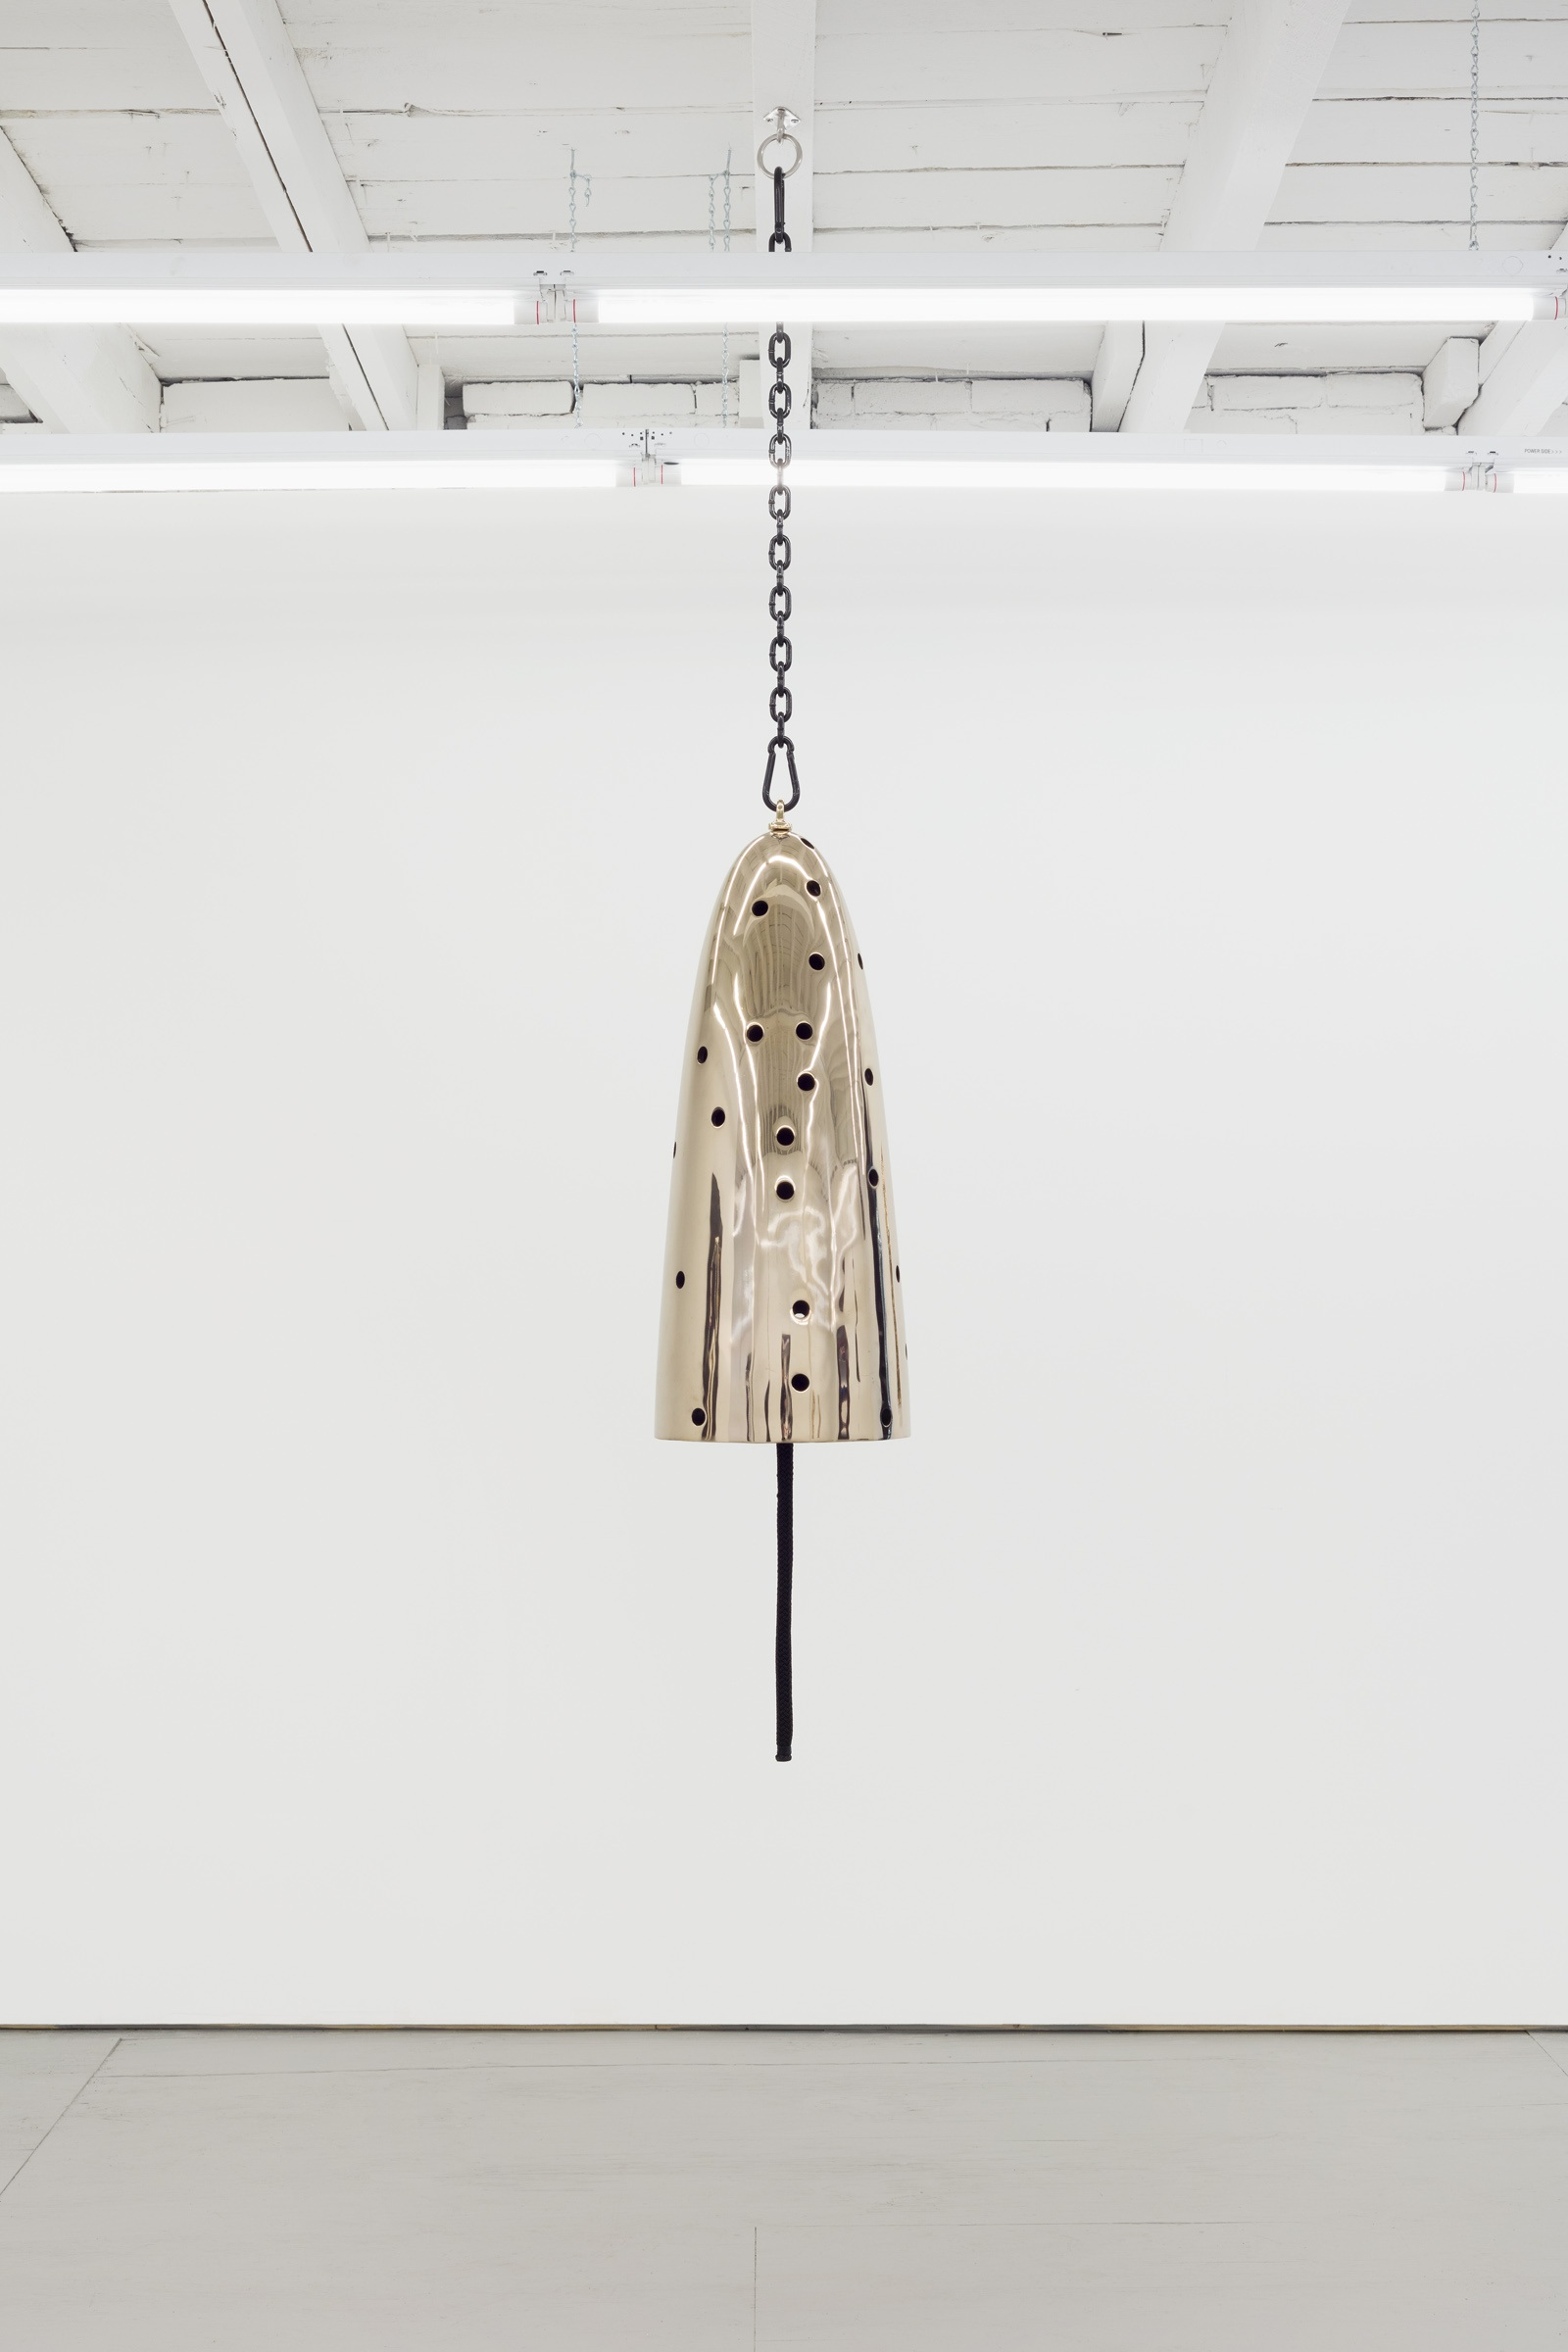 Davina Semo   Conductor , 2019 Polished and patinated cast bronze bell, whipped nylon line, wooden clapper, powder-coated chain, hardware Bell: 32 in. tall x 13 in. diameter